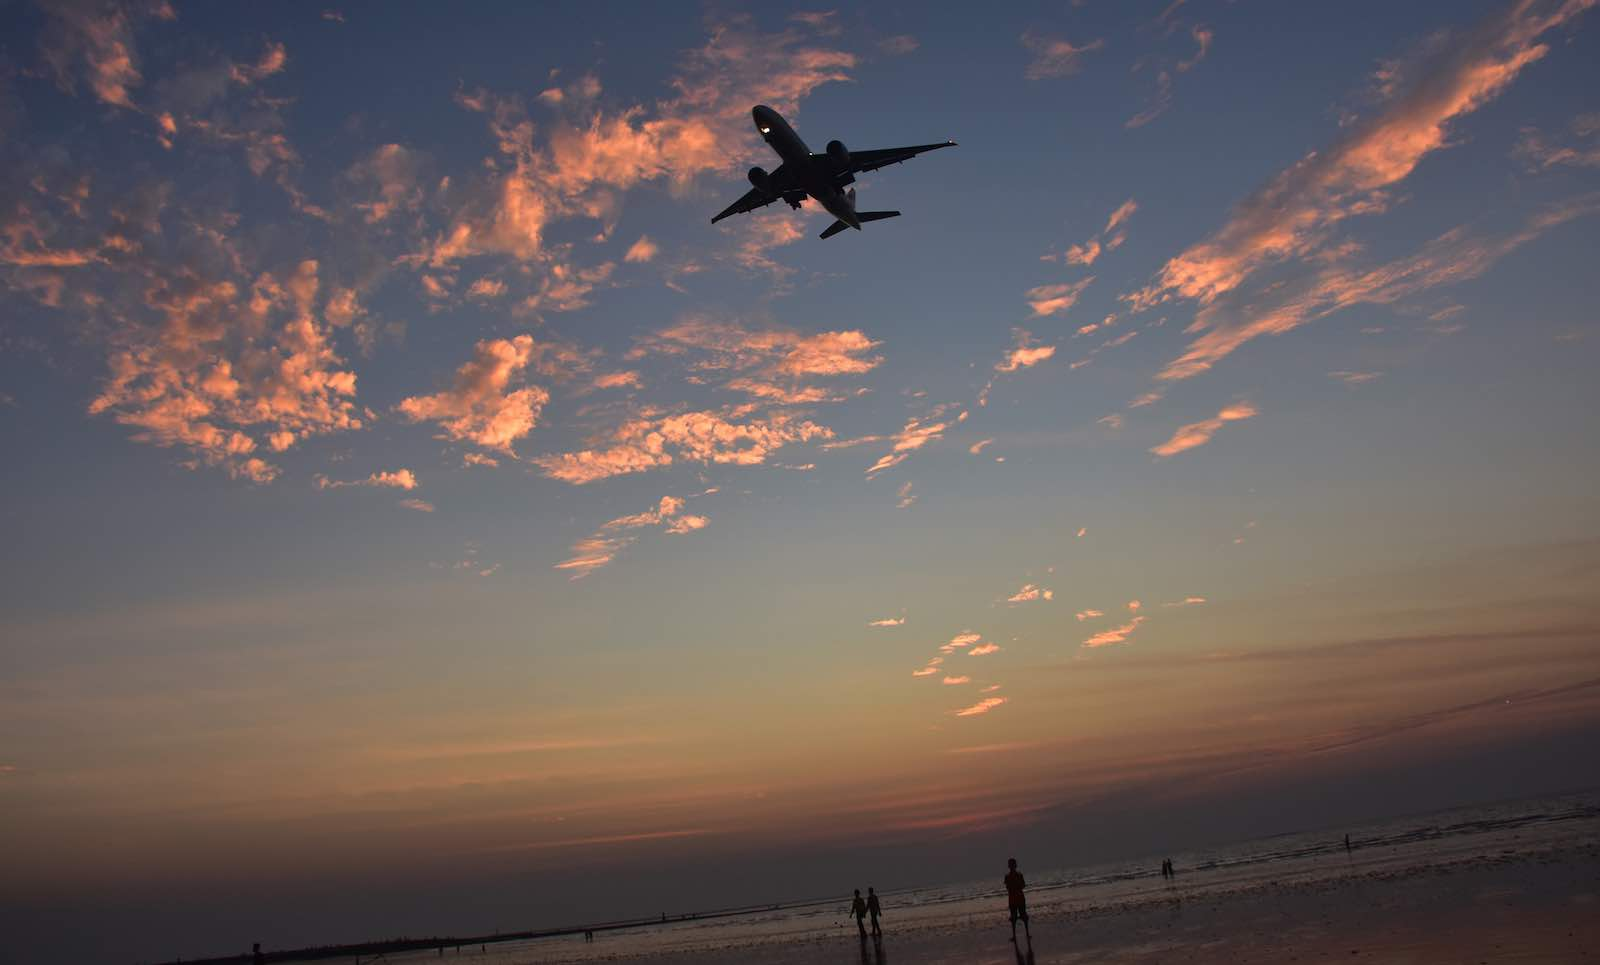 A plane flying over Juhu Beach in Mumbai, India (Photo: Azhar Khan via Getty)